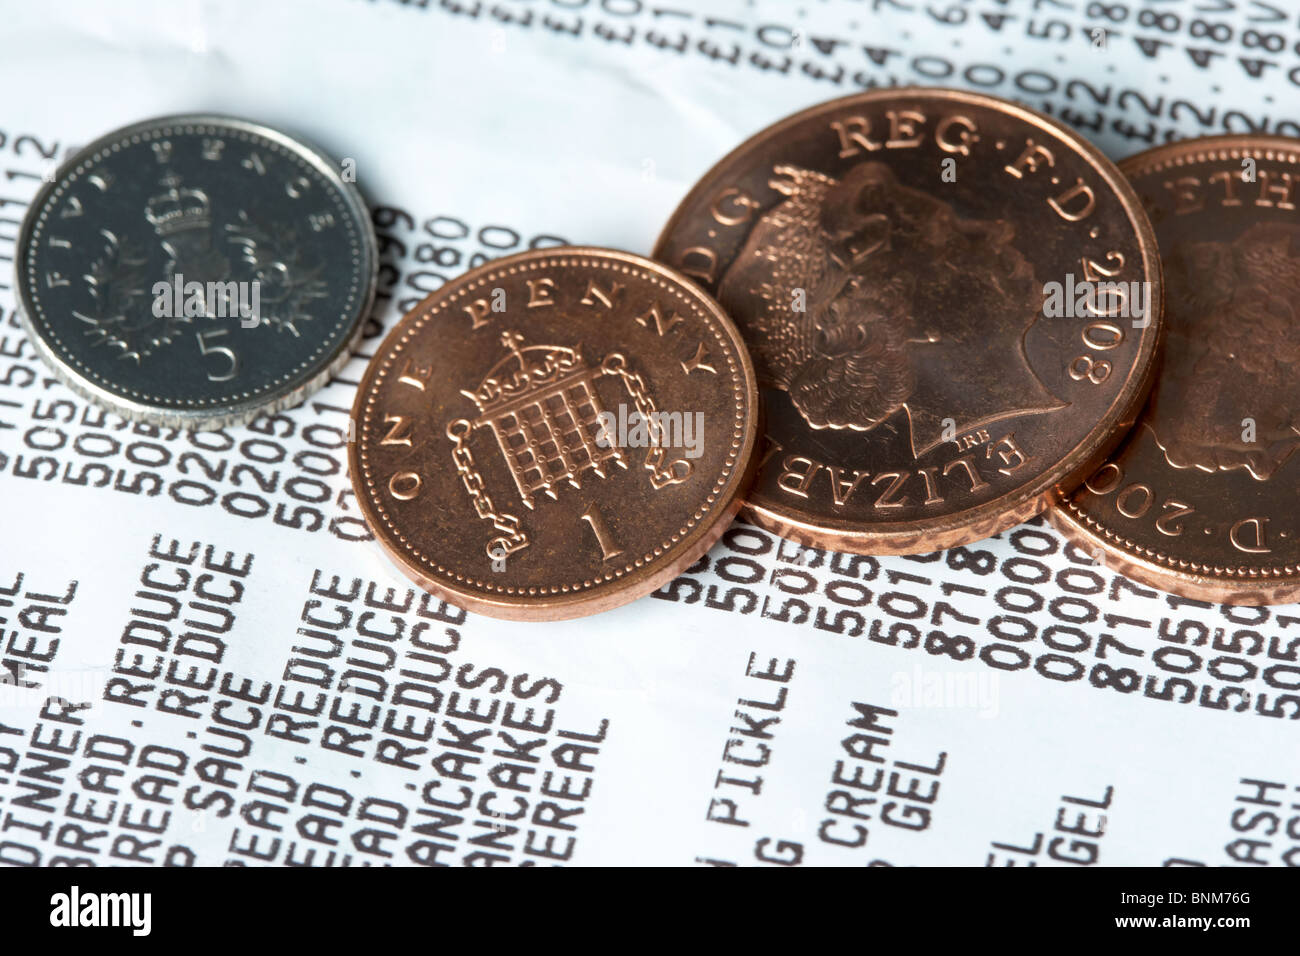 supermarket till receipt showing reduced items and british coins pennies Stock Photo